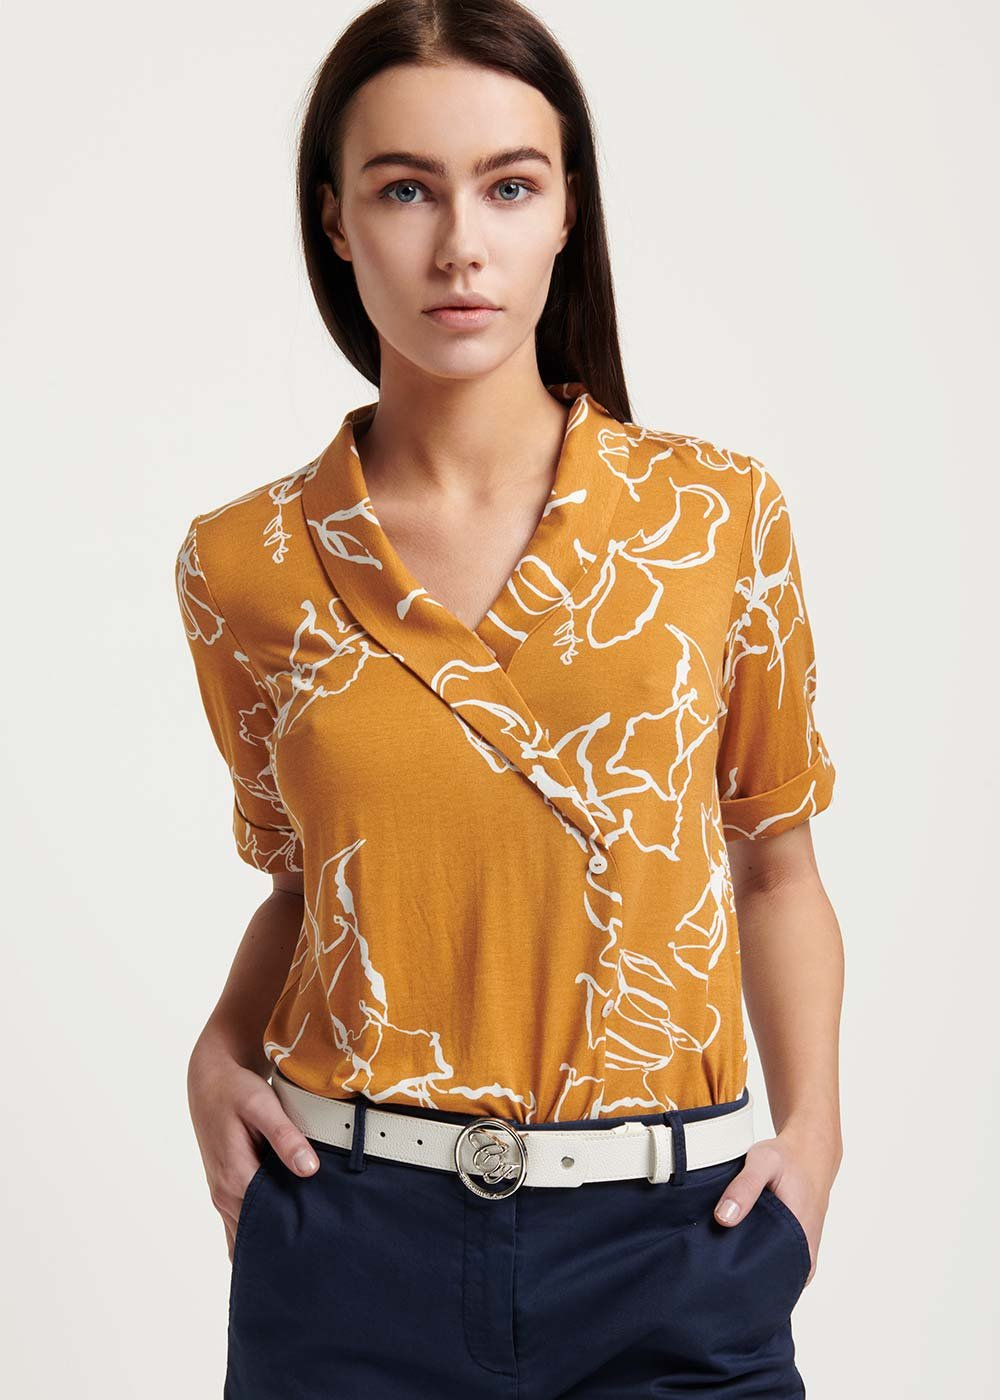 Sakil double-breasted shirt - Curcuma /  White /  Fantasia - Woman